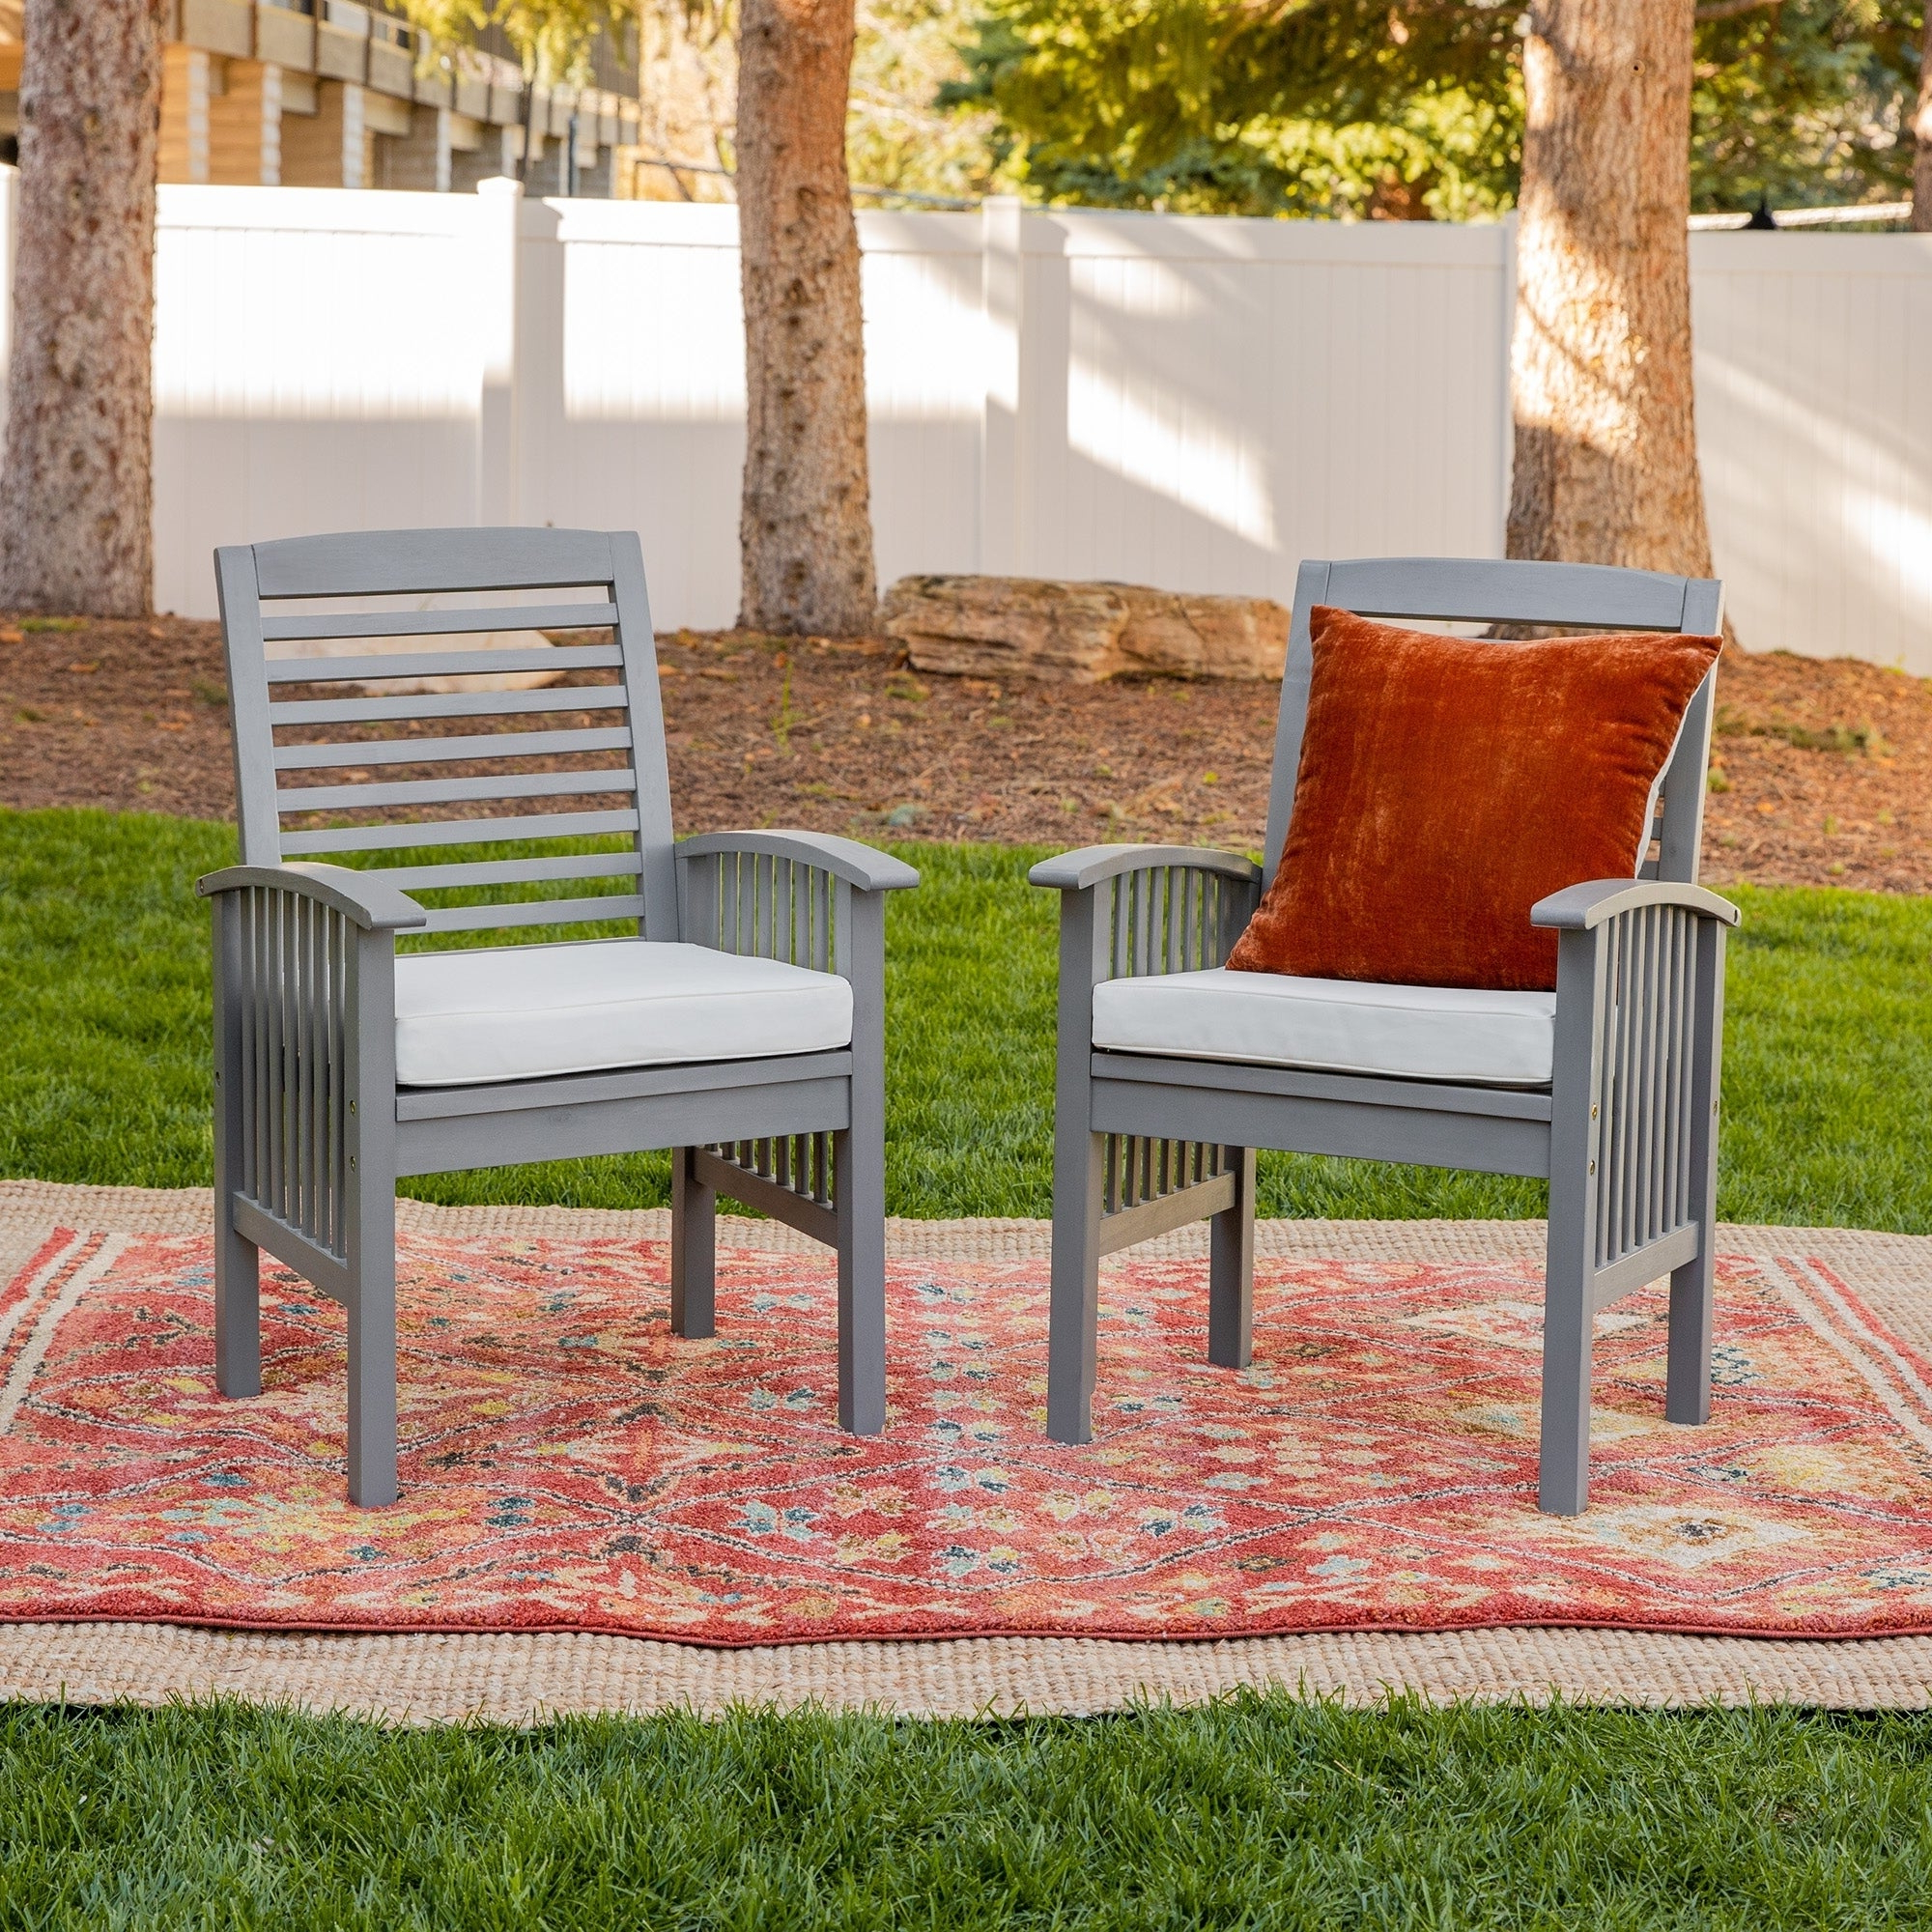 Havenside Home Surfside Dark Brown Acacia Wood Chairs (Set Of 2) – 24 X 20 X 37H Throughout Latest Havenside Home Surfside Outdoor Lounge Chairs (View 3 of 25)